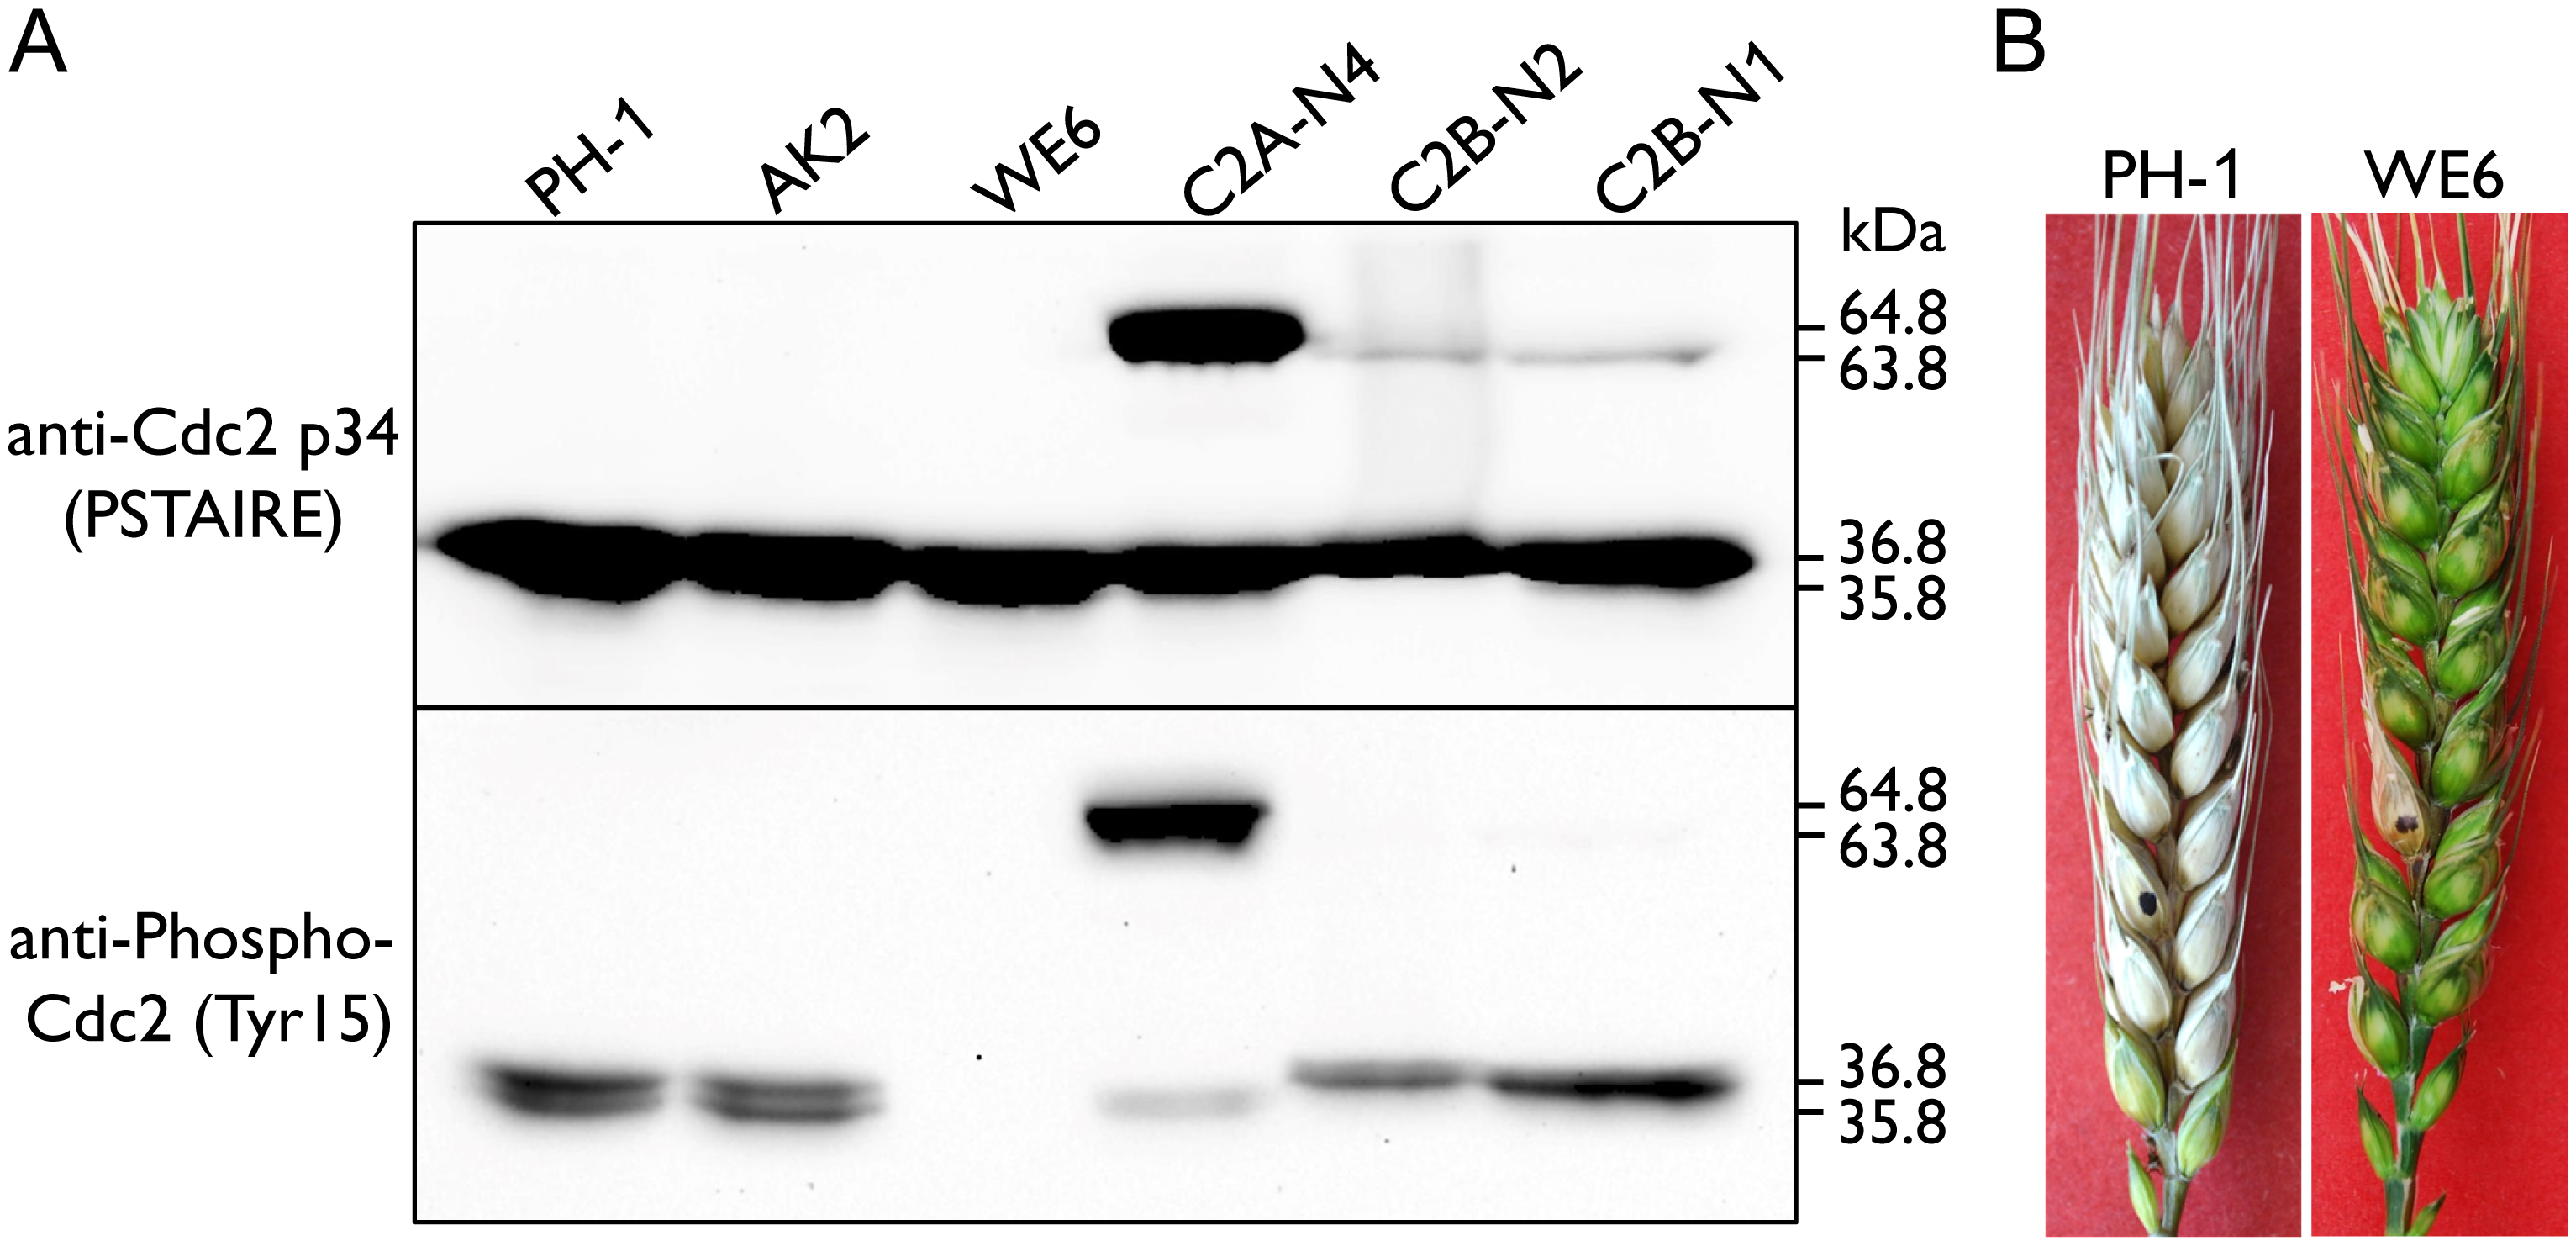 Assays for inhibitory phosphorylation of Cdc2A and Cdc2B and defects of the <i>Fgwee1</i> deletion mutants in plant infection.